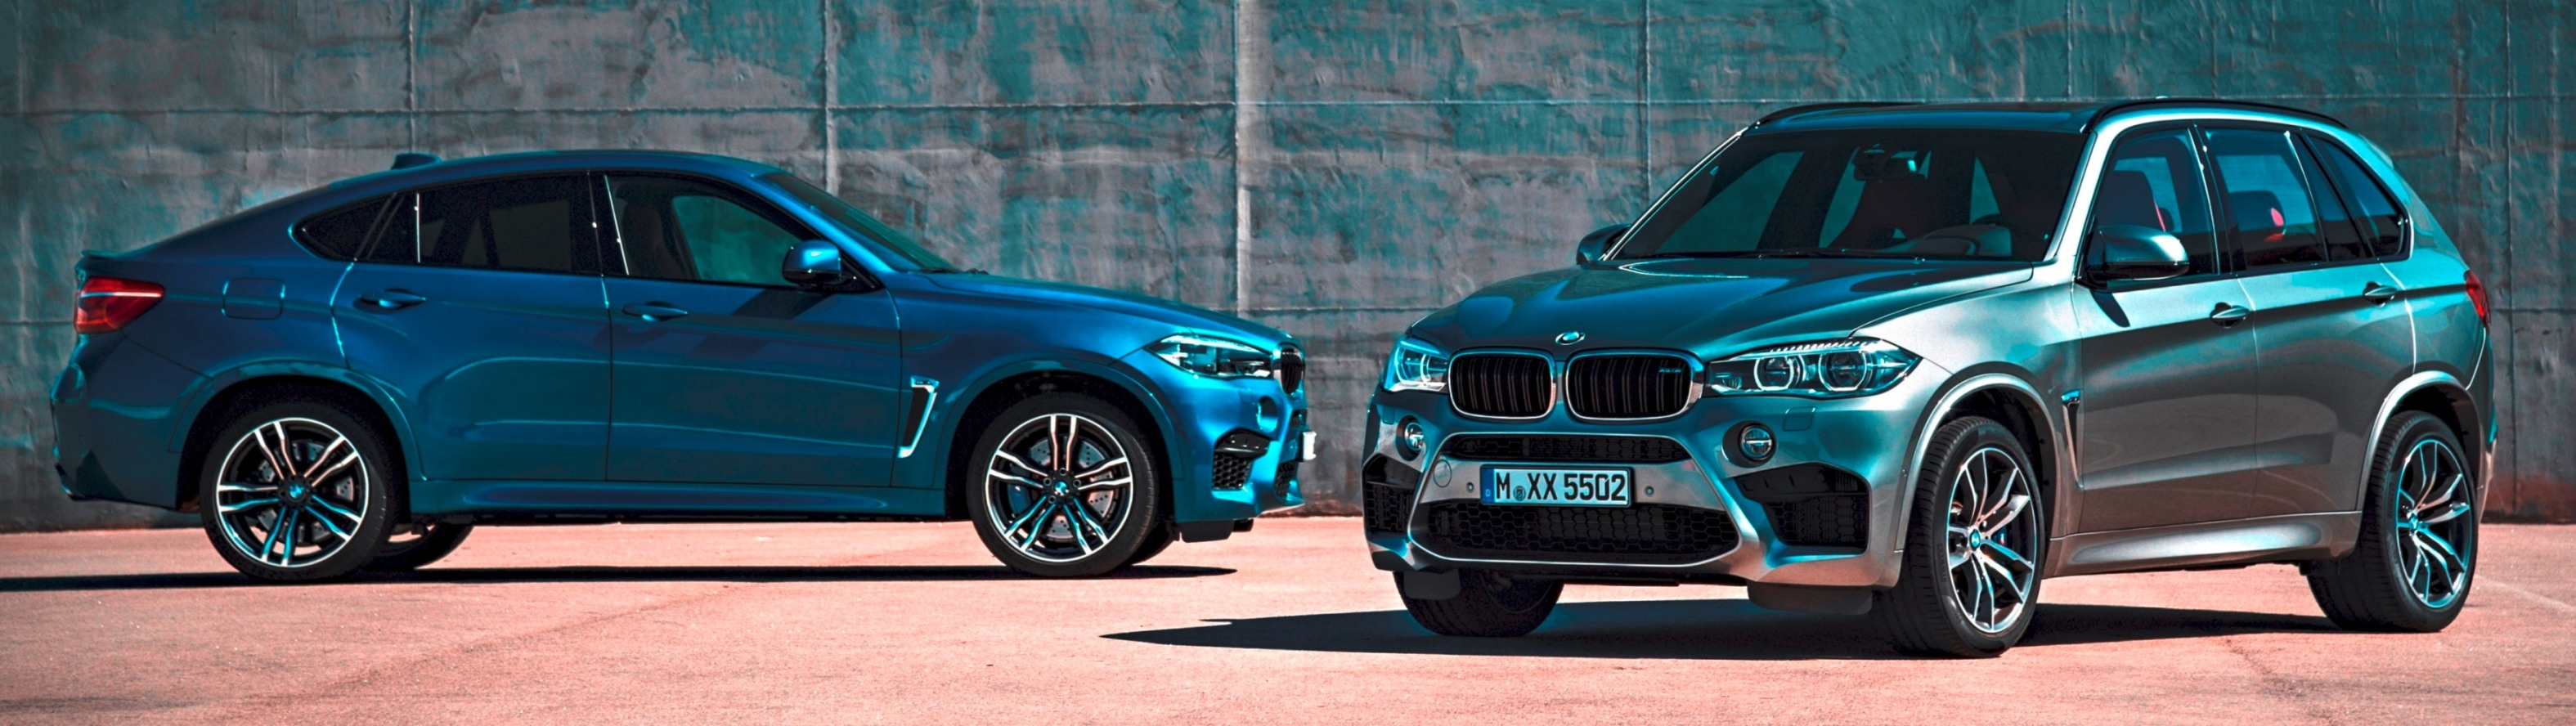 BMW X6M and X5M_Image (2)